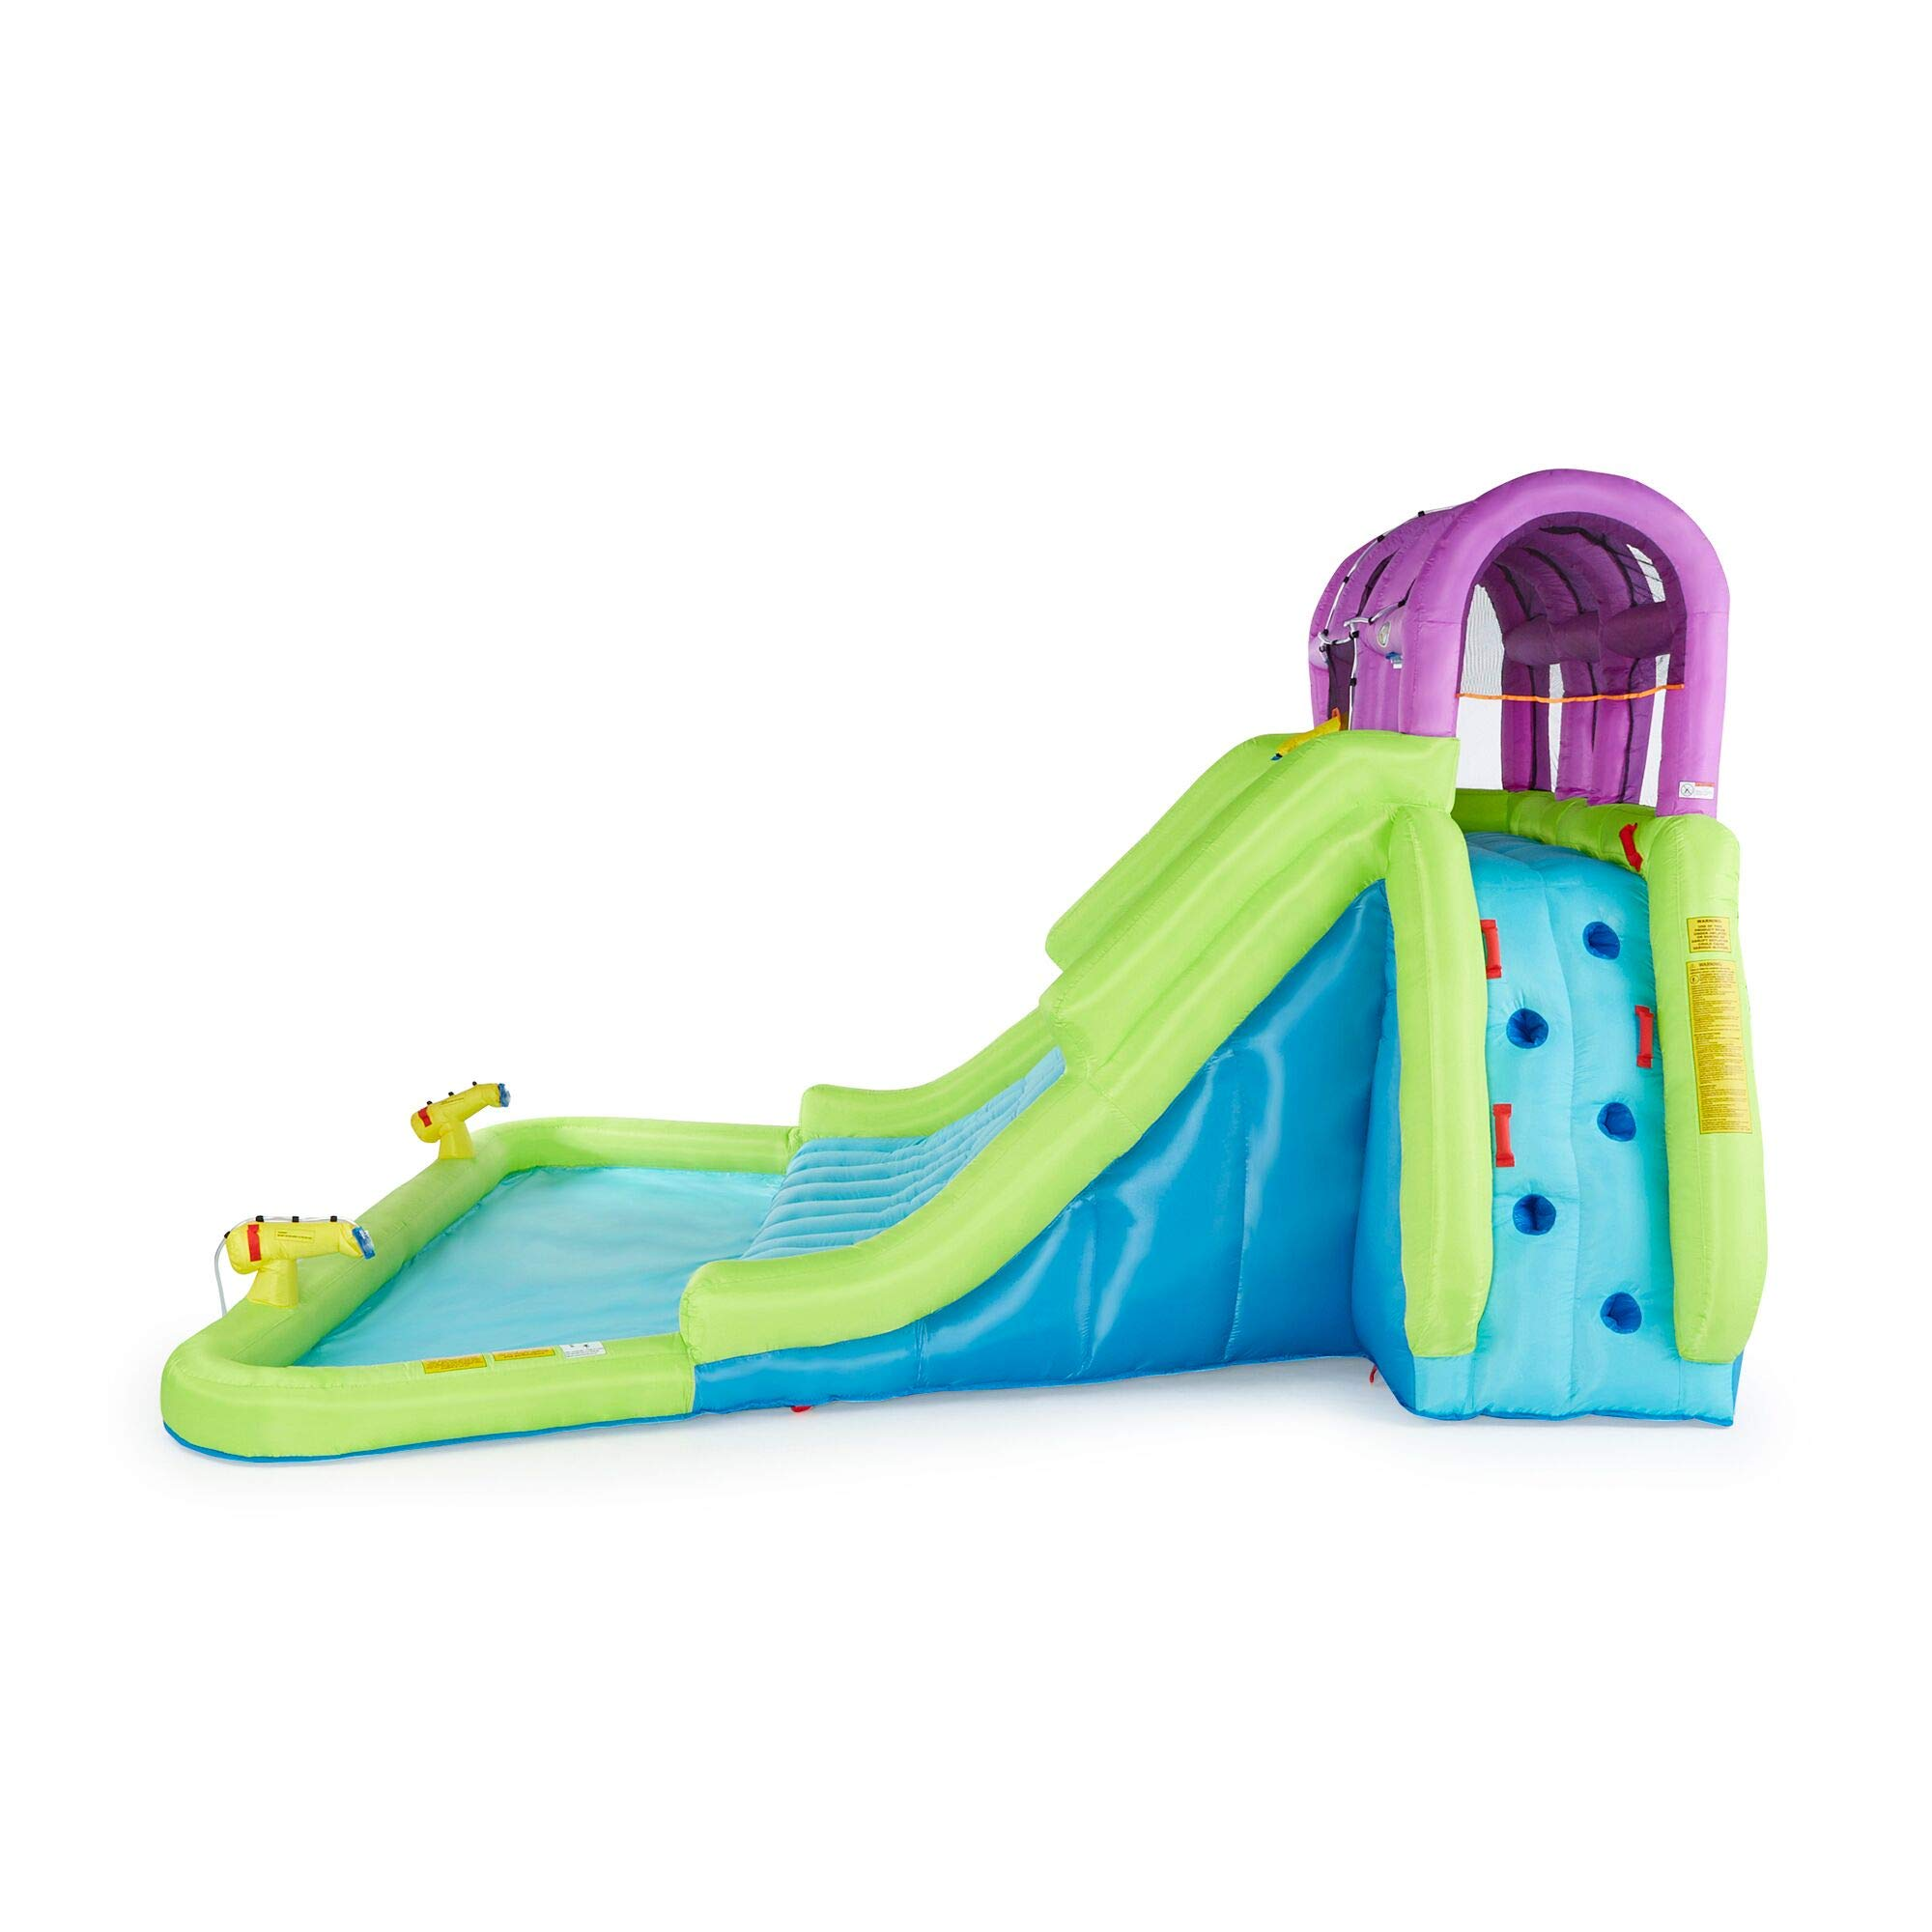 Kahuna Mega Blast Inflatable Backyard Kiddie Pool and Slide Water Park by Kahuna (Image #5)